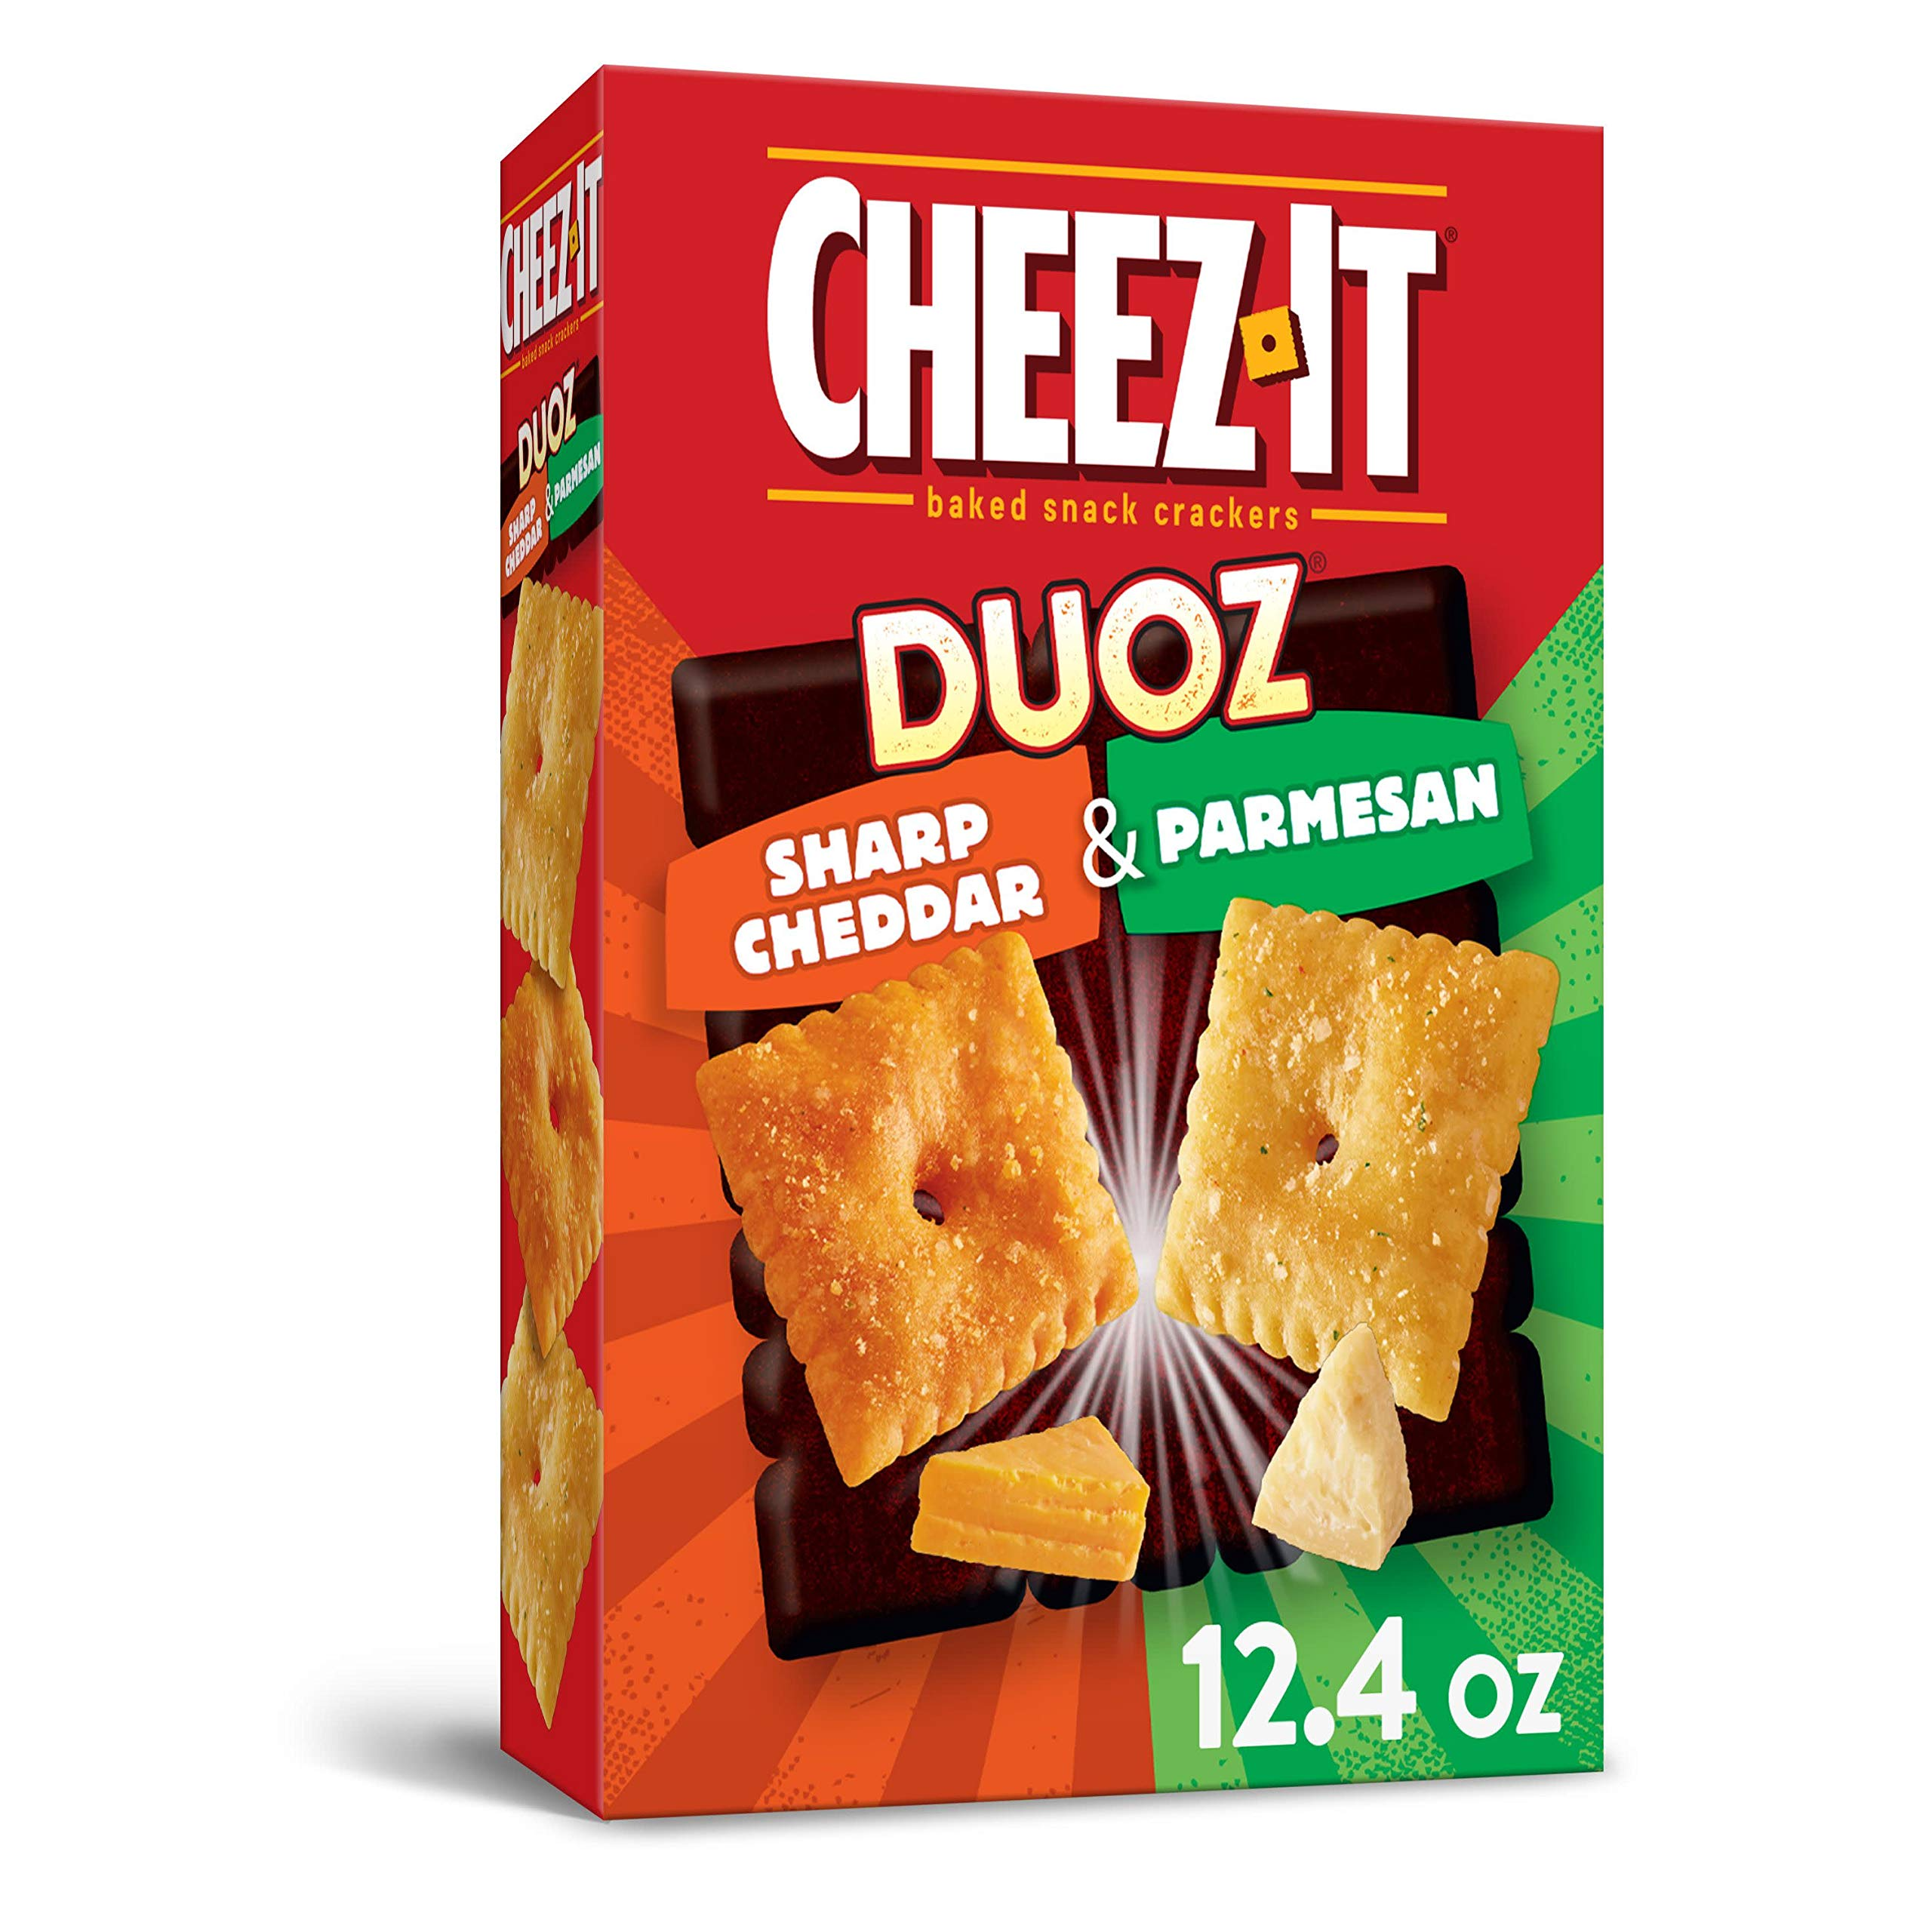 Cheez-It DUOZ Baked Snack Cheese Crackers, Sharp Cheddar and Parmesan, 12.4 oz/351 g One Box